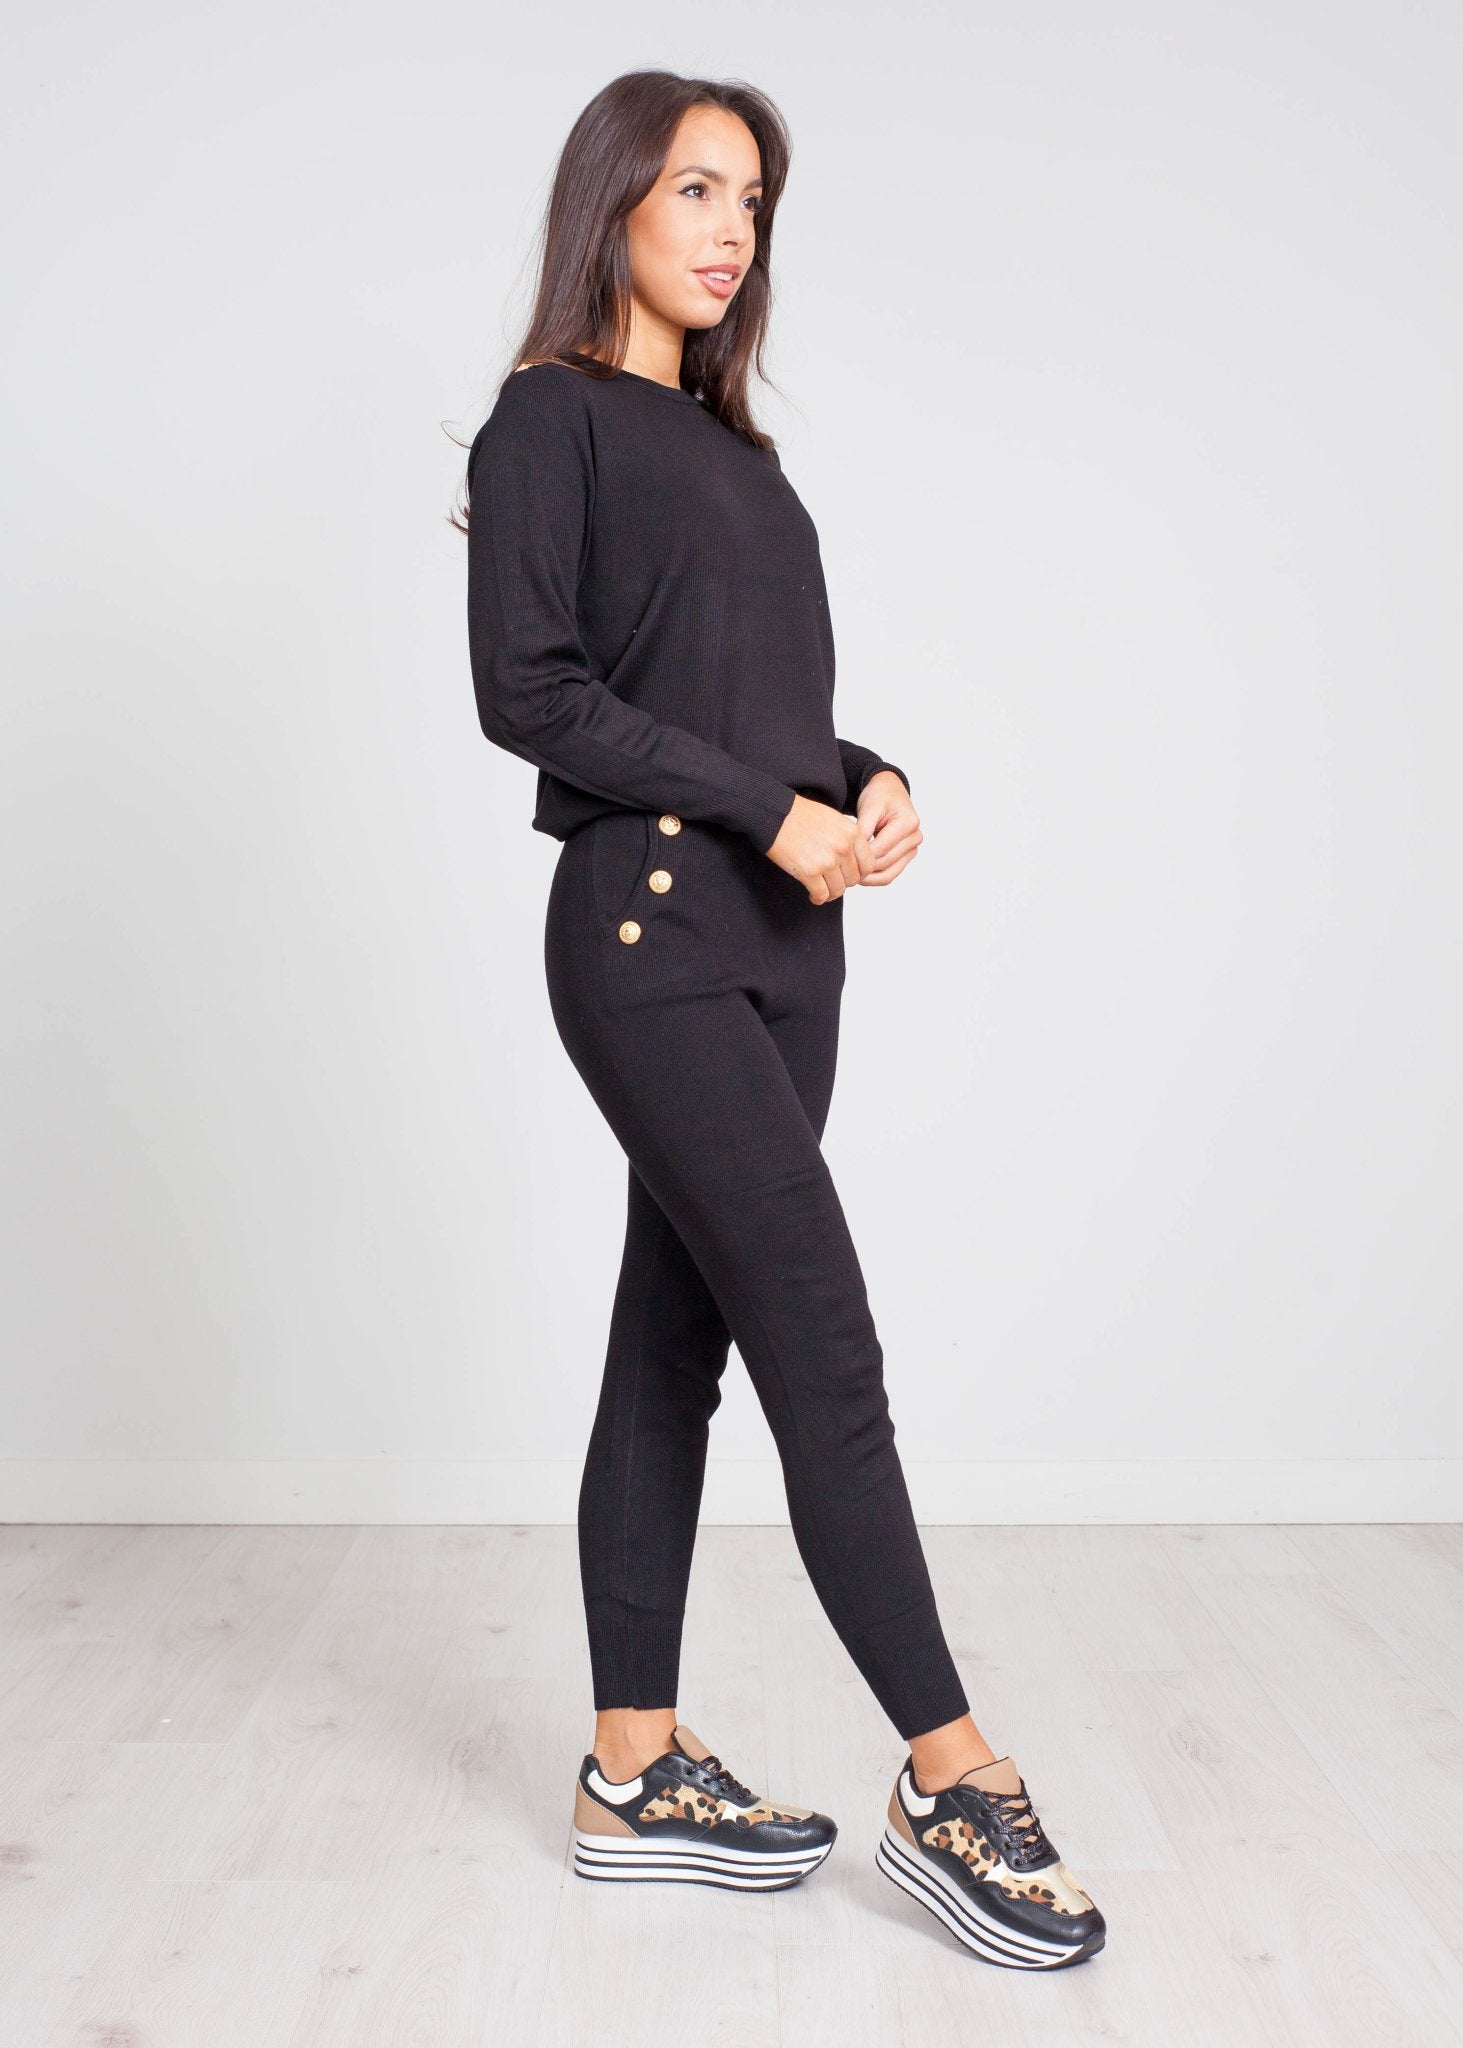 Priya High Waist Lounge Set In Black - The Walk in Wardrobe